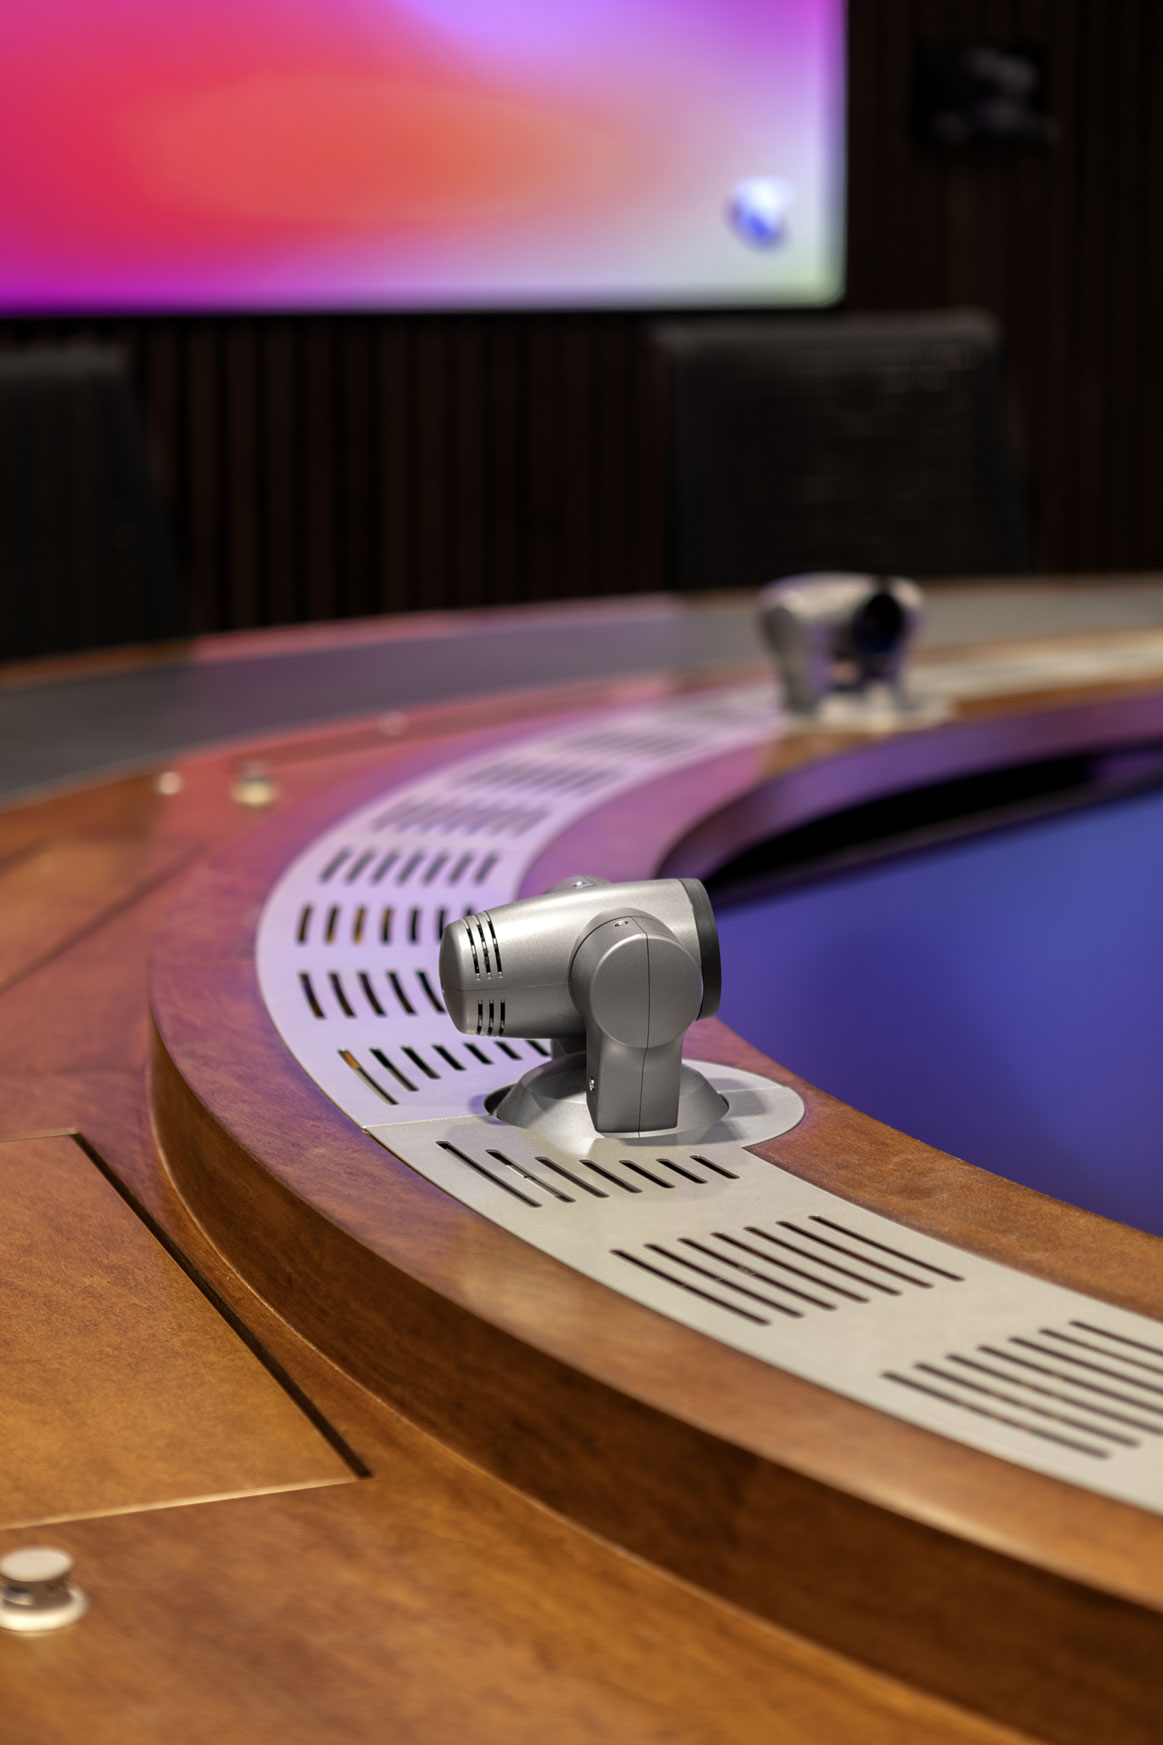 Telstra whirlpool room conference table